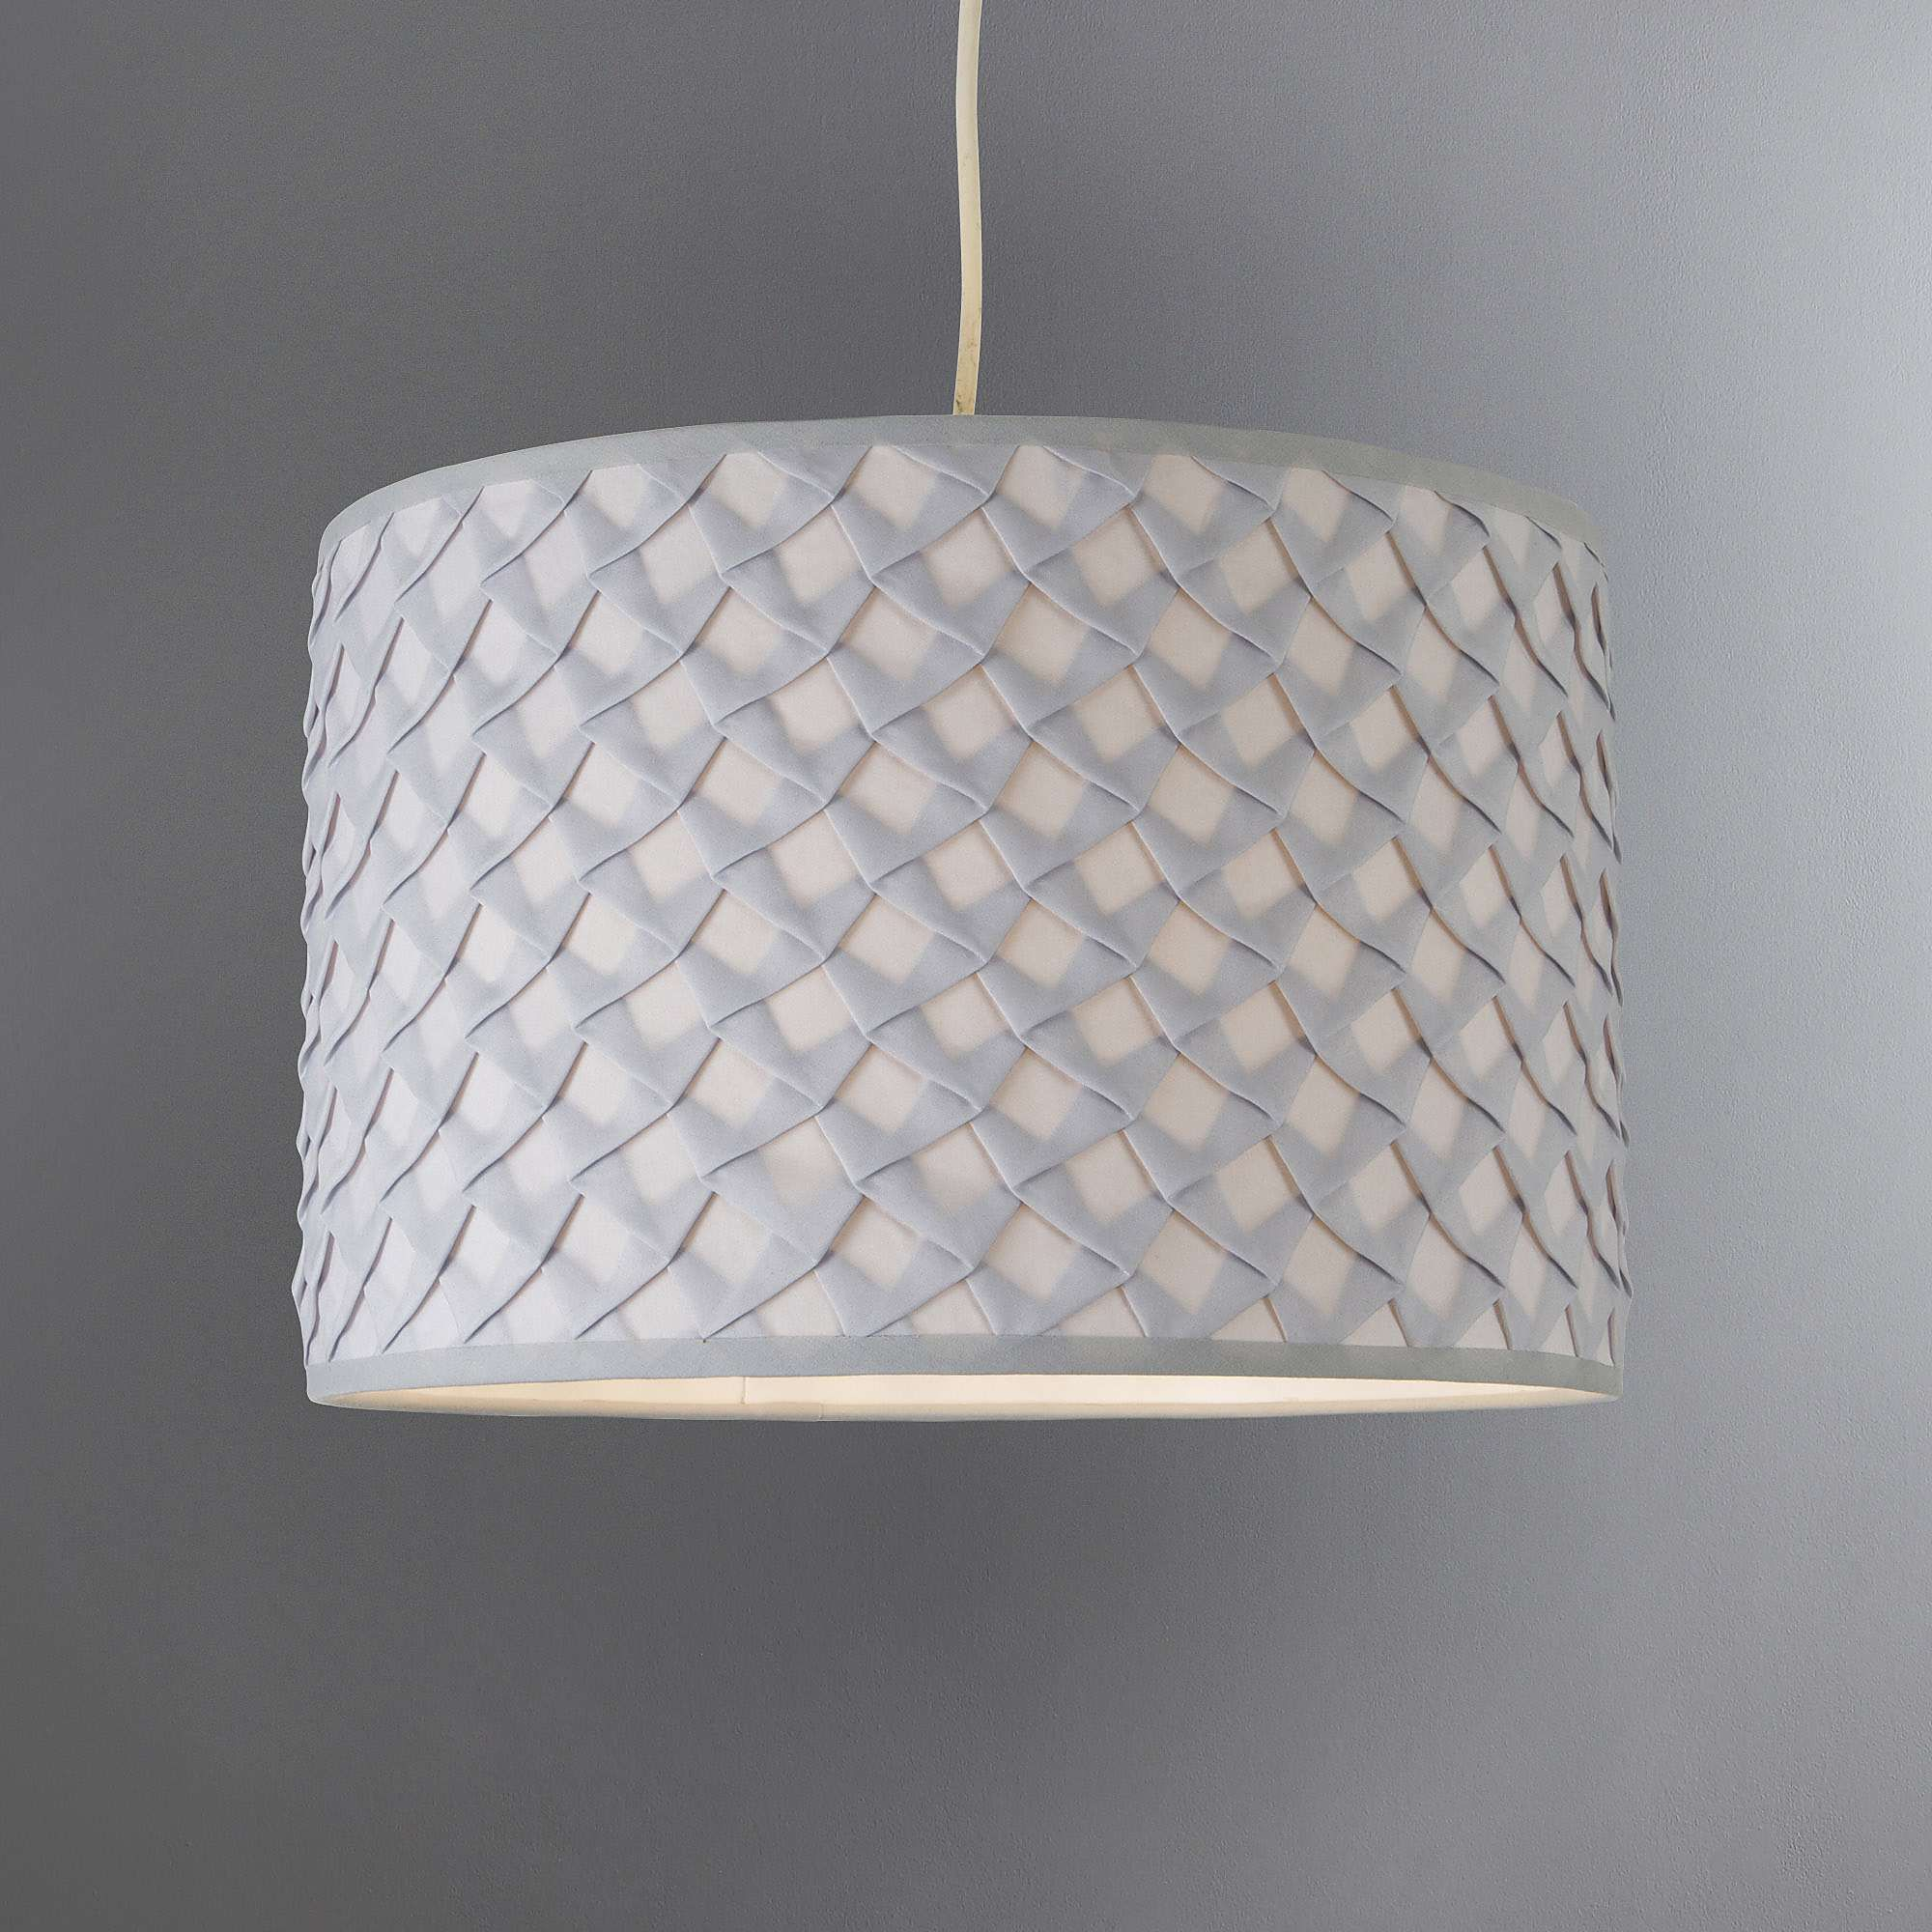 Nancy 30cm Drum Grey Shade Ceiling Lamps Bedroom Ceiling Lamp Shades Ceiling Light Shades